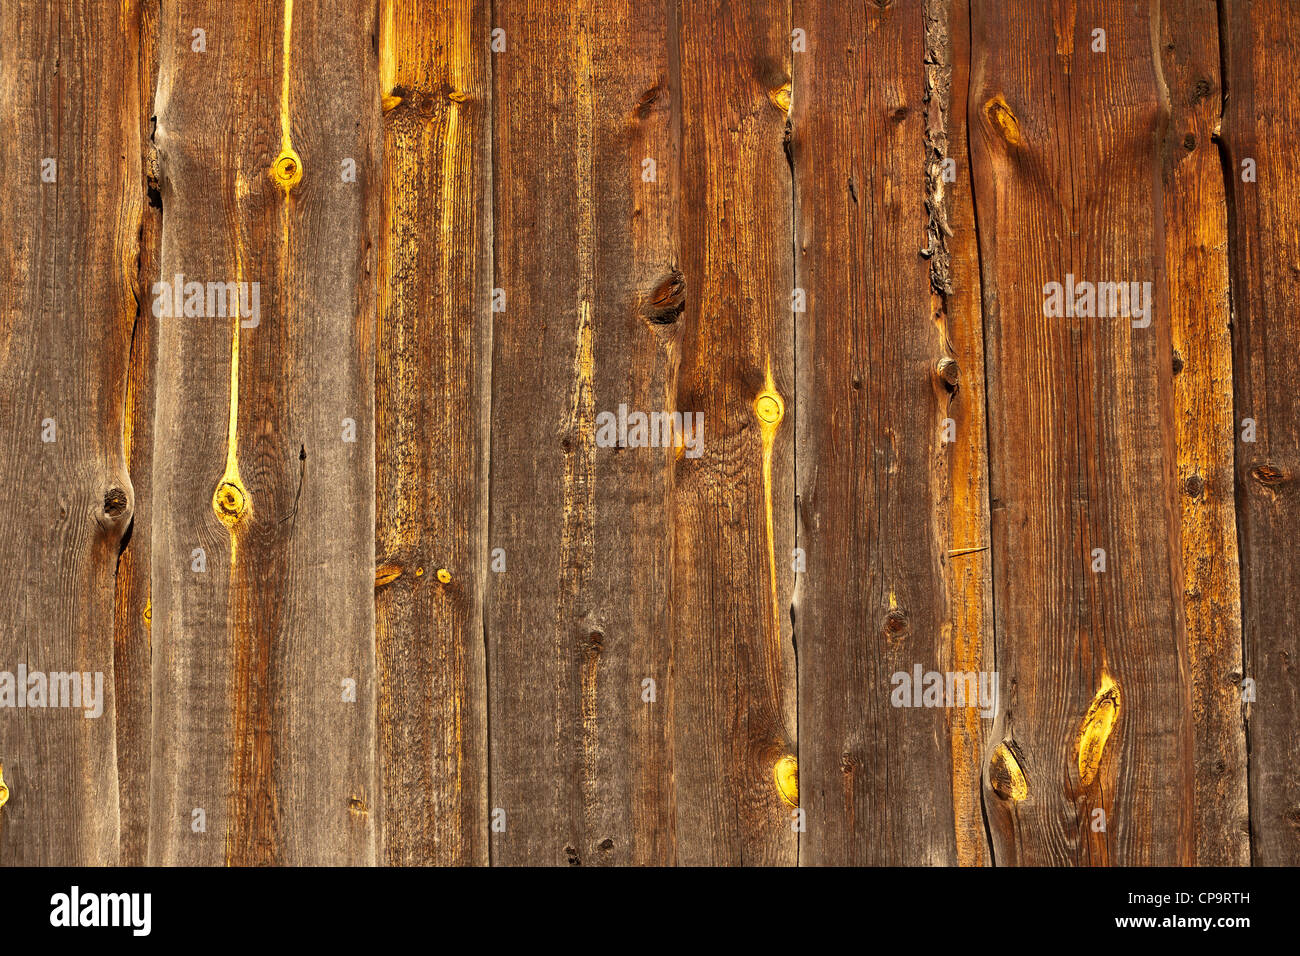 A fence made of wooden planks - Stock Image